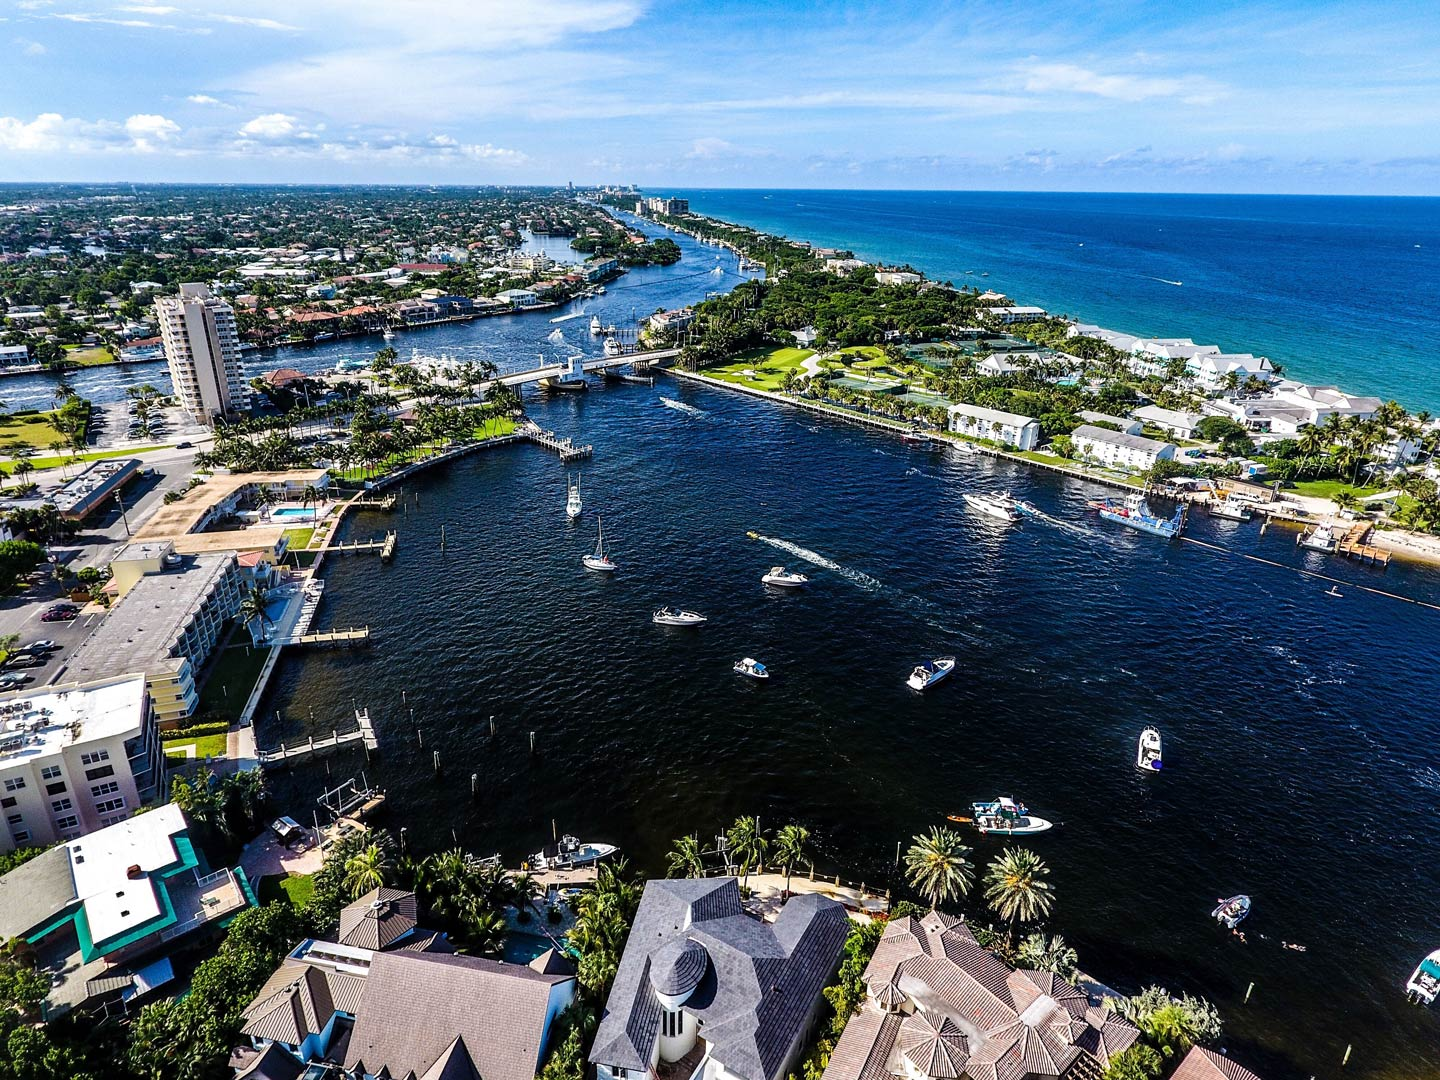 Aerial view of Pompano Beach with fishing boats leaving the bay